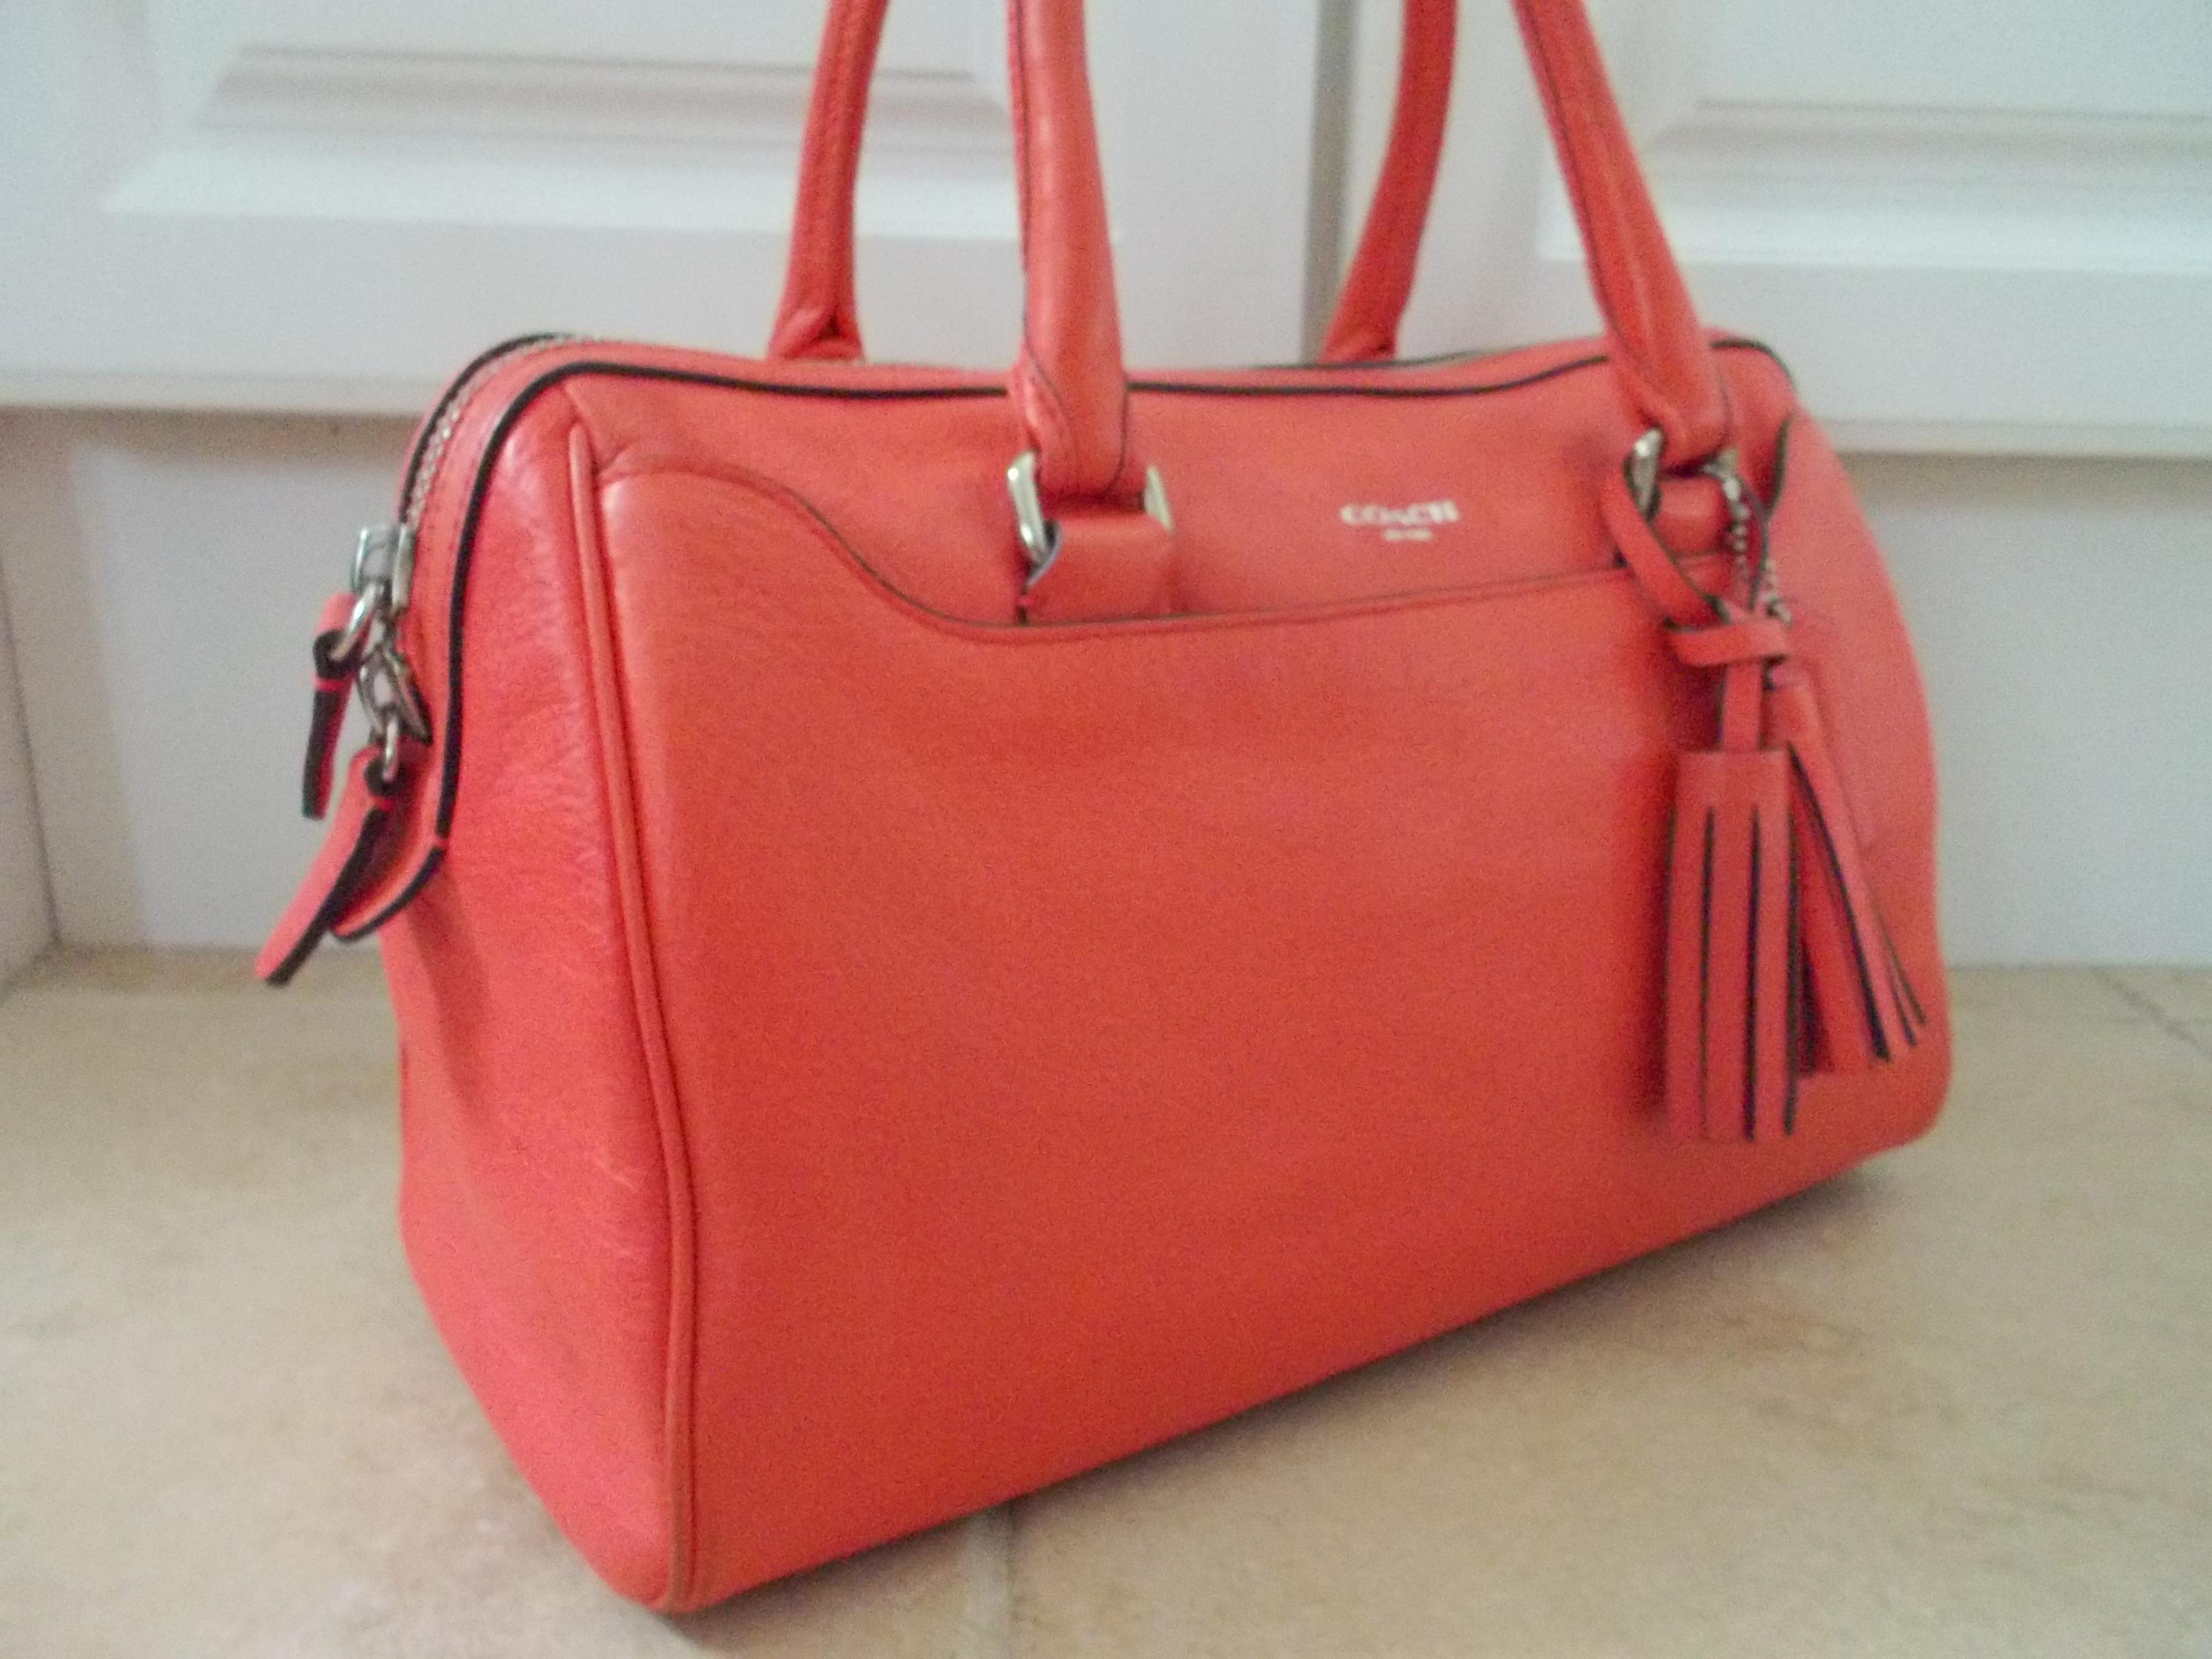 553059c8b070 reduced coach legacy haley coral pink leather satchel tradesy 432c4 27d28